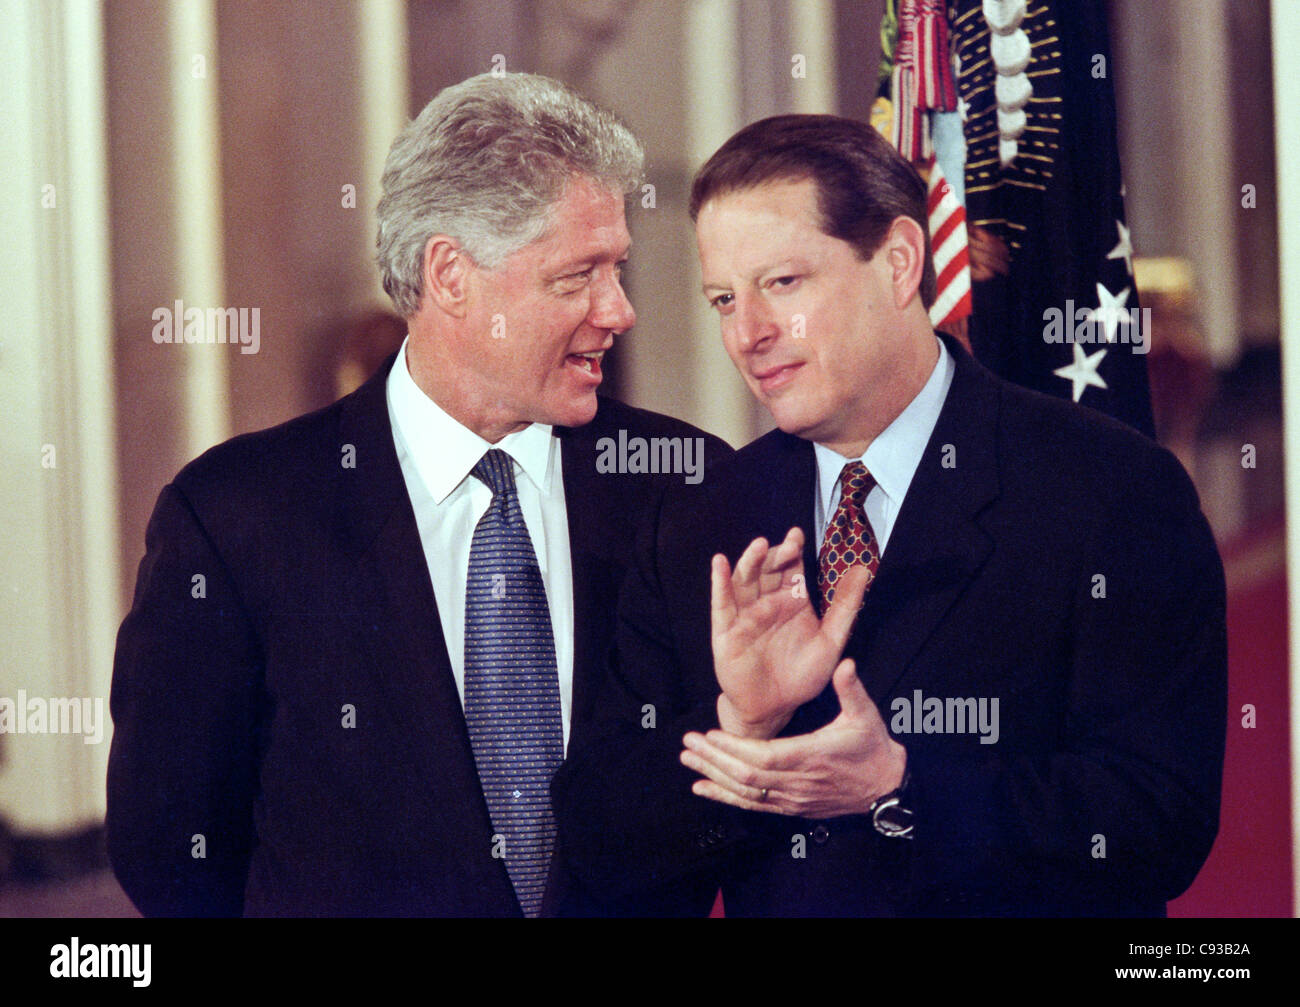 a comparison between a king and bill clinton Bill clinton remains one of america's most popular presidents a national poll last march by nbc and the wall street journal found 56 percent of americans had a clearly favorable view of clinton.